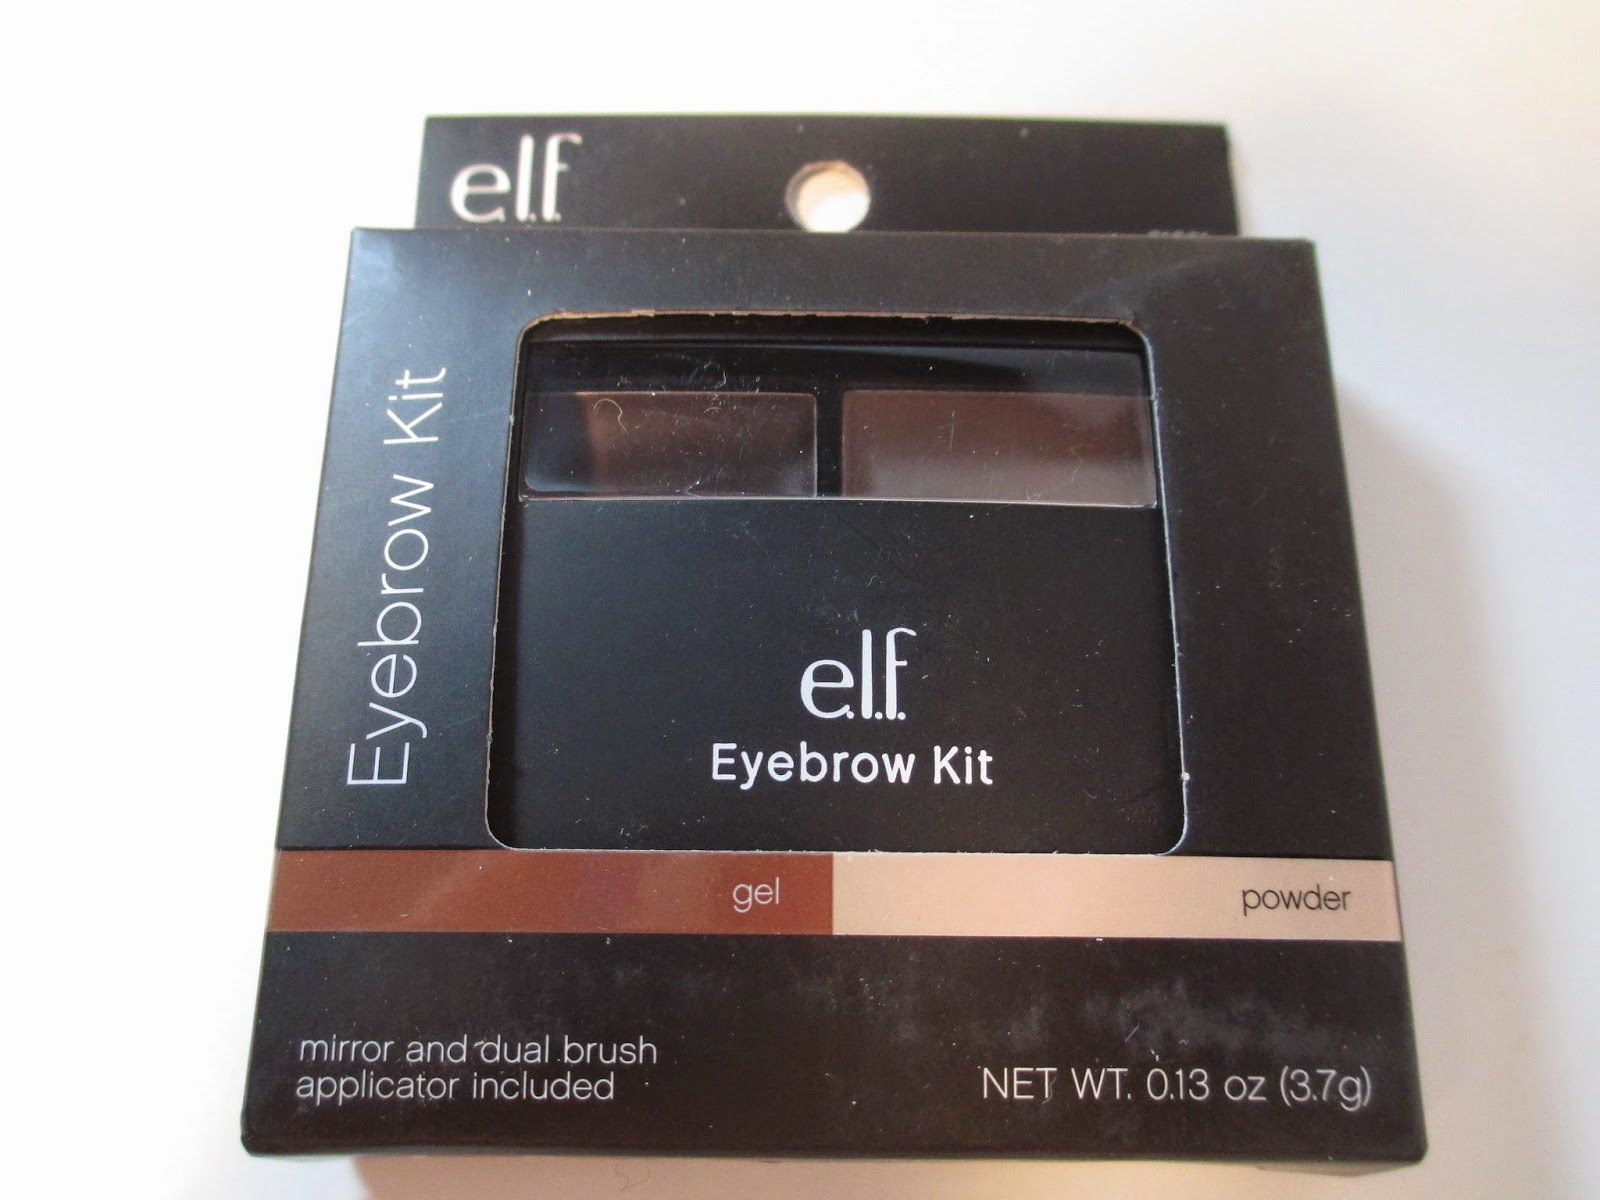 Eyebrow Kit by e.l.f. #13